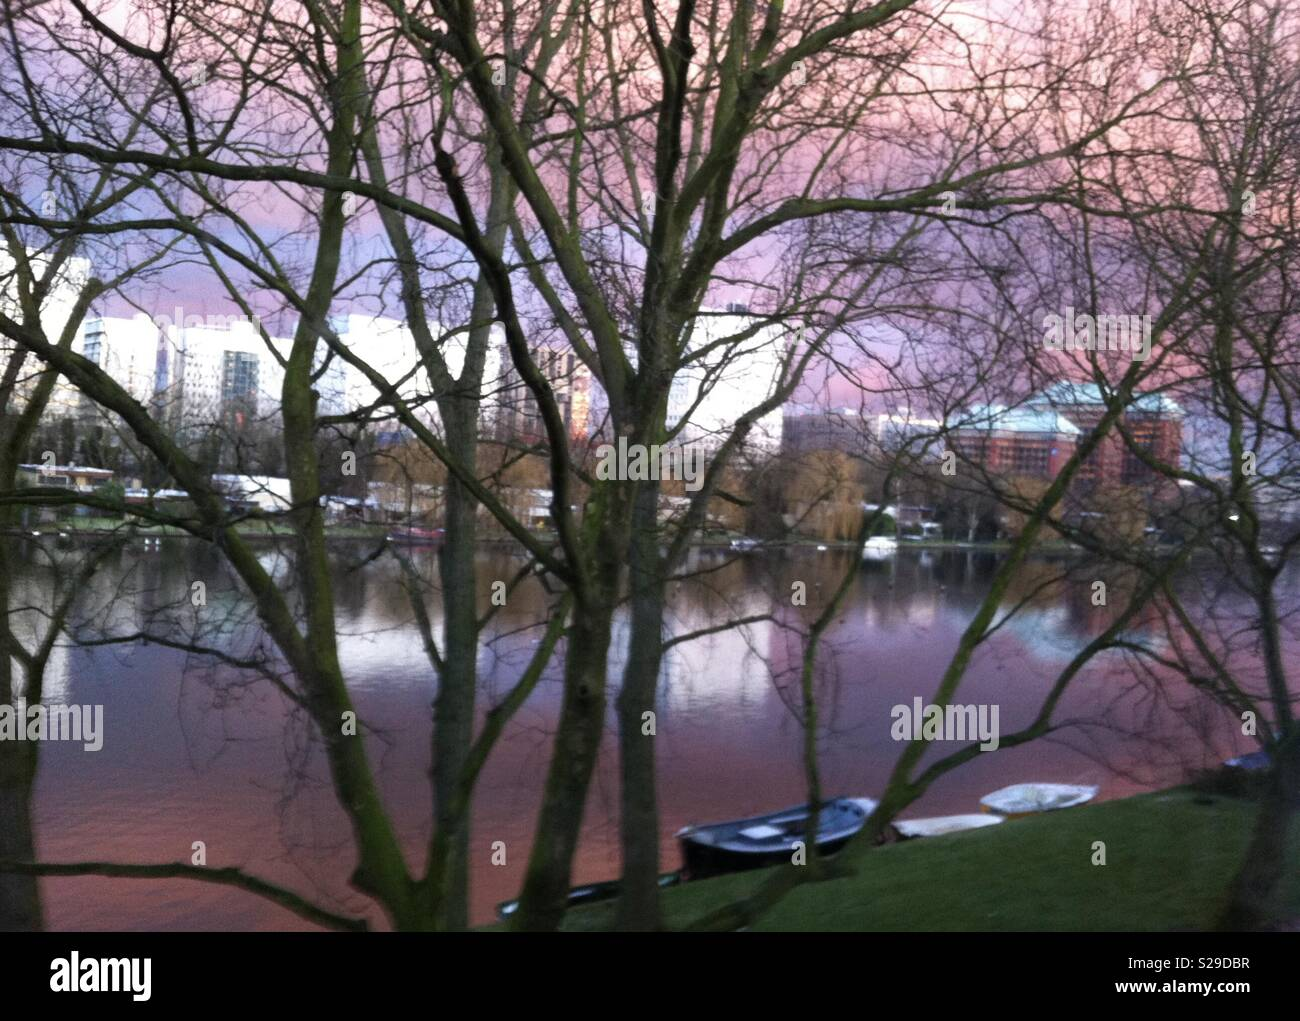 Pinky sunset in Amsterdam canal - Stock Image